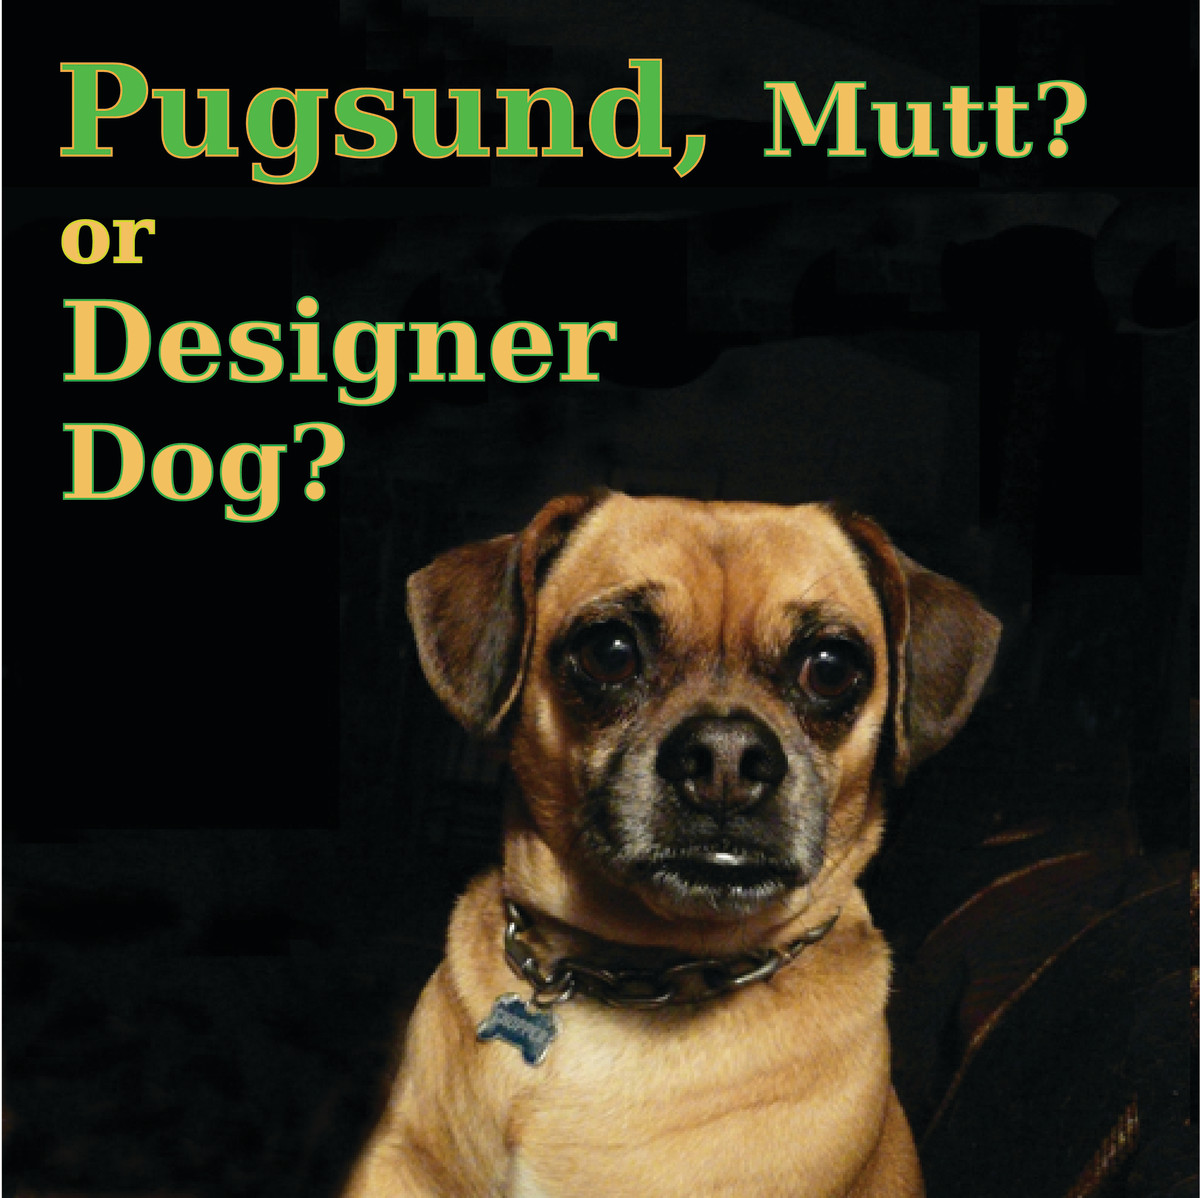 Mutt or Designer Dog? Helpful Information About Pugsunds